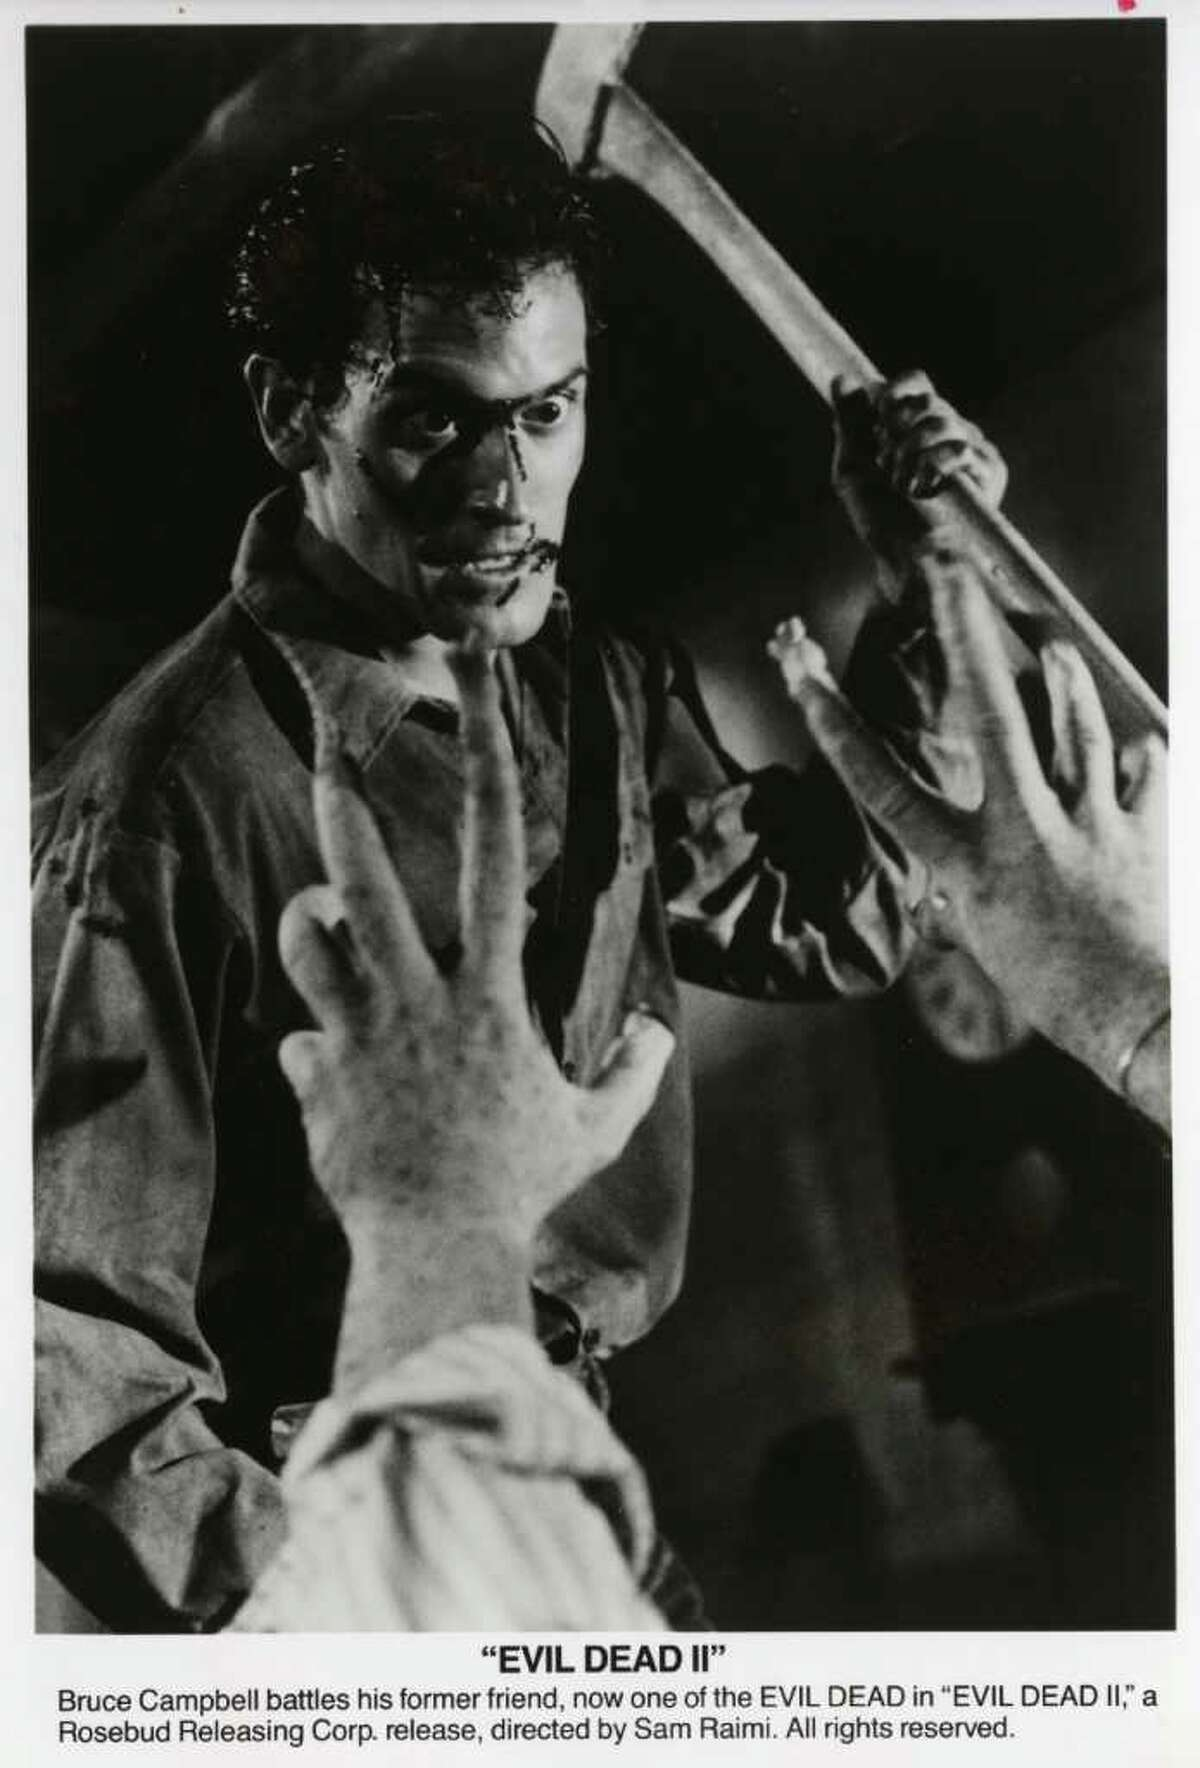 """EVIL DEAD 2 -- Bruce Campbell battles his former friend, now one of the EVIL DEAD in """"EVIL DEAD II,"""" a Rosebud Releasing Corp. release, directed by Sam Raimi. 1987 Rosebud Releasing Corp."""